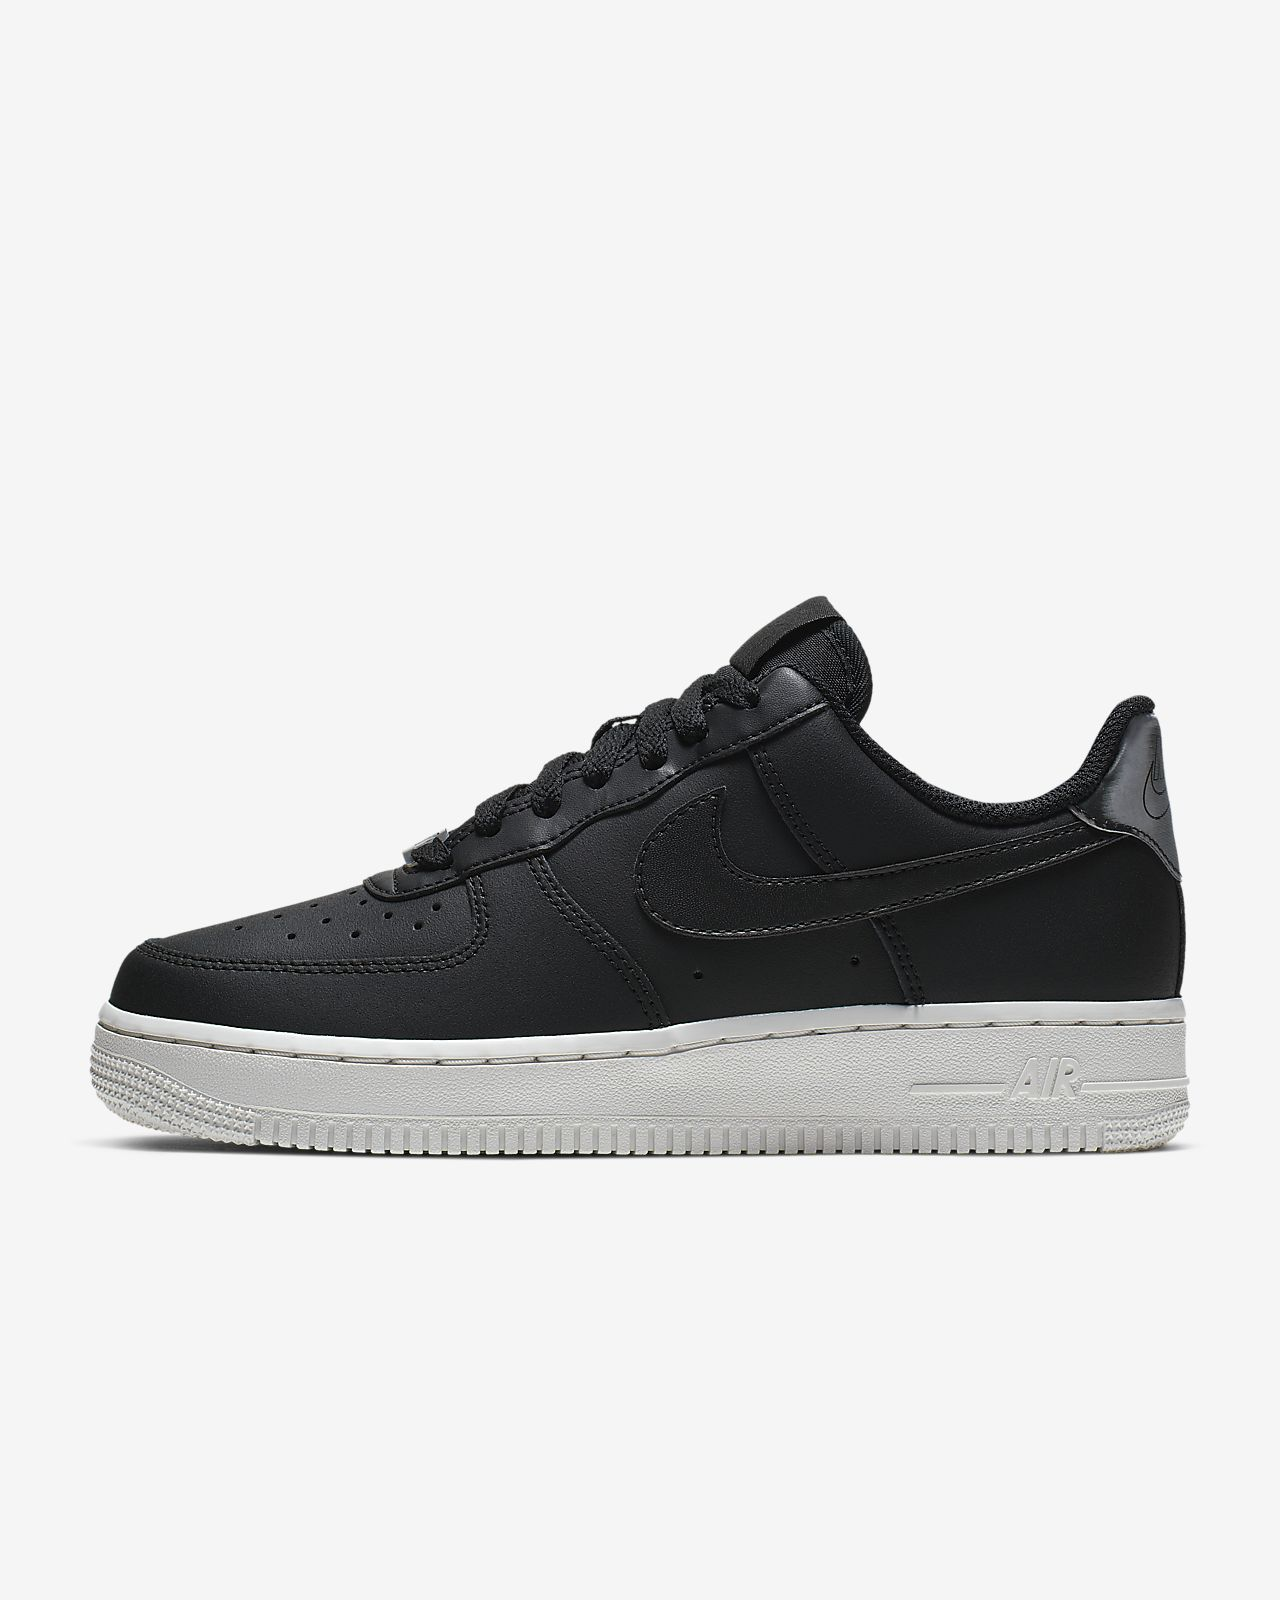 a1cb6151 Nike Air Force 1 '07 Essential Women's Shoe. Nike.com AU